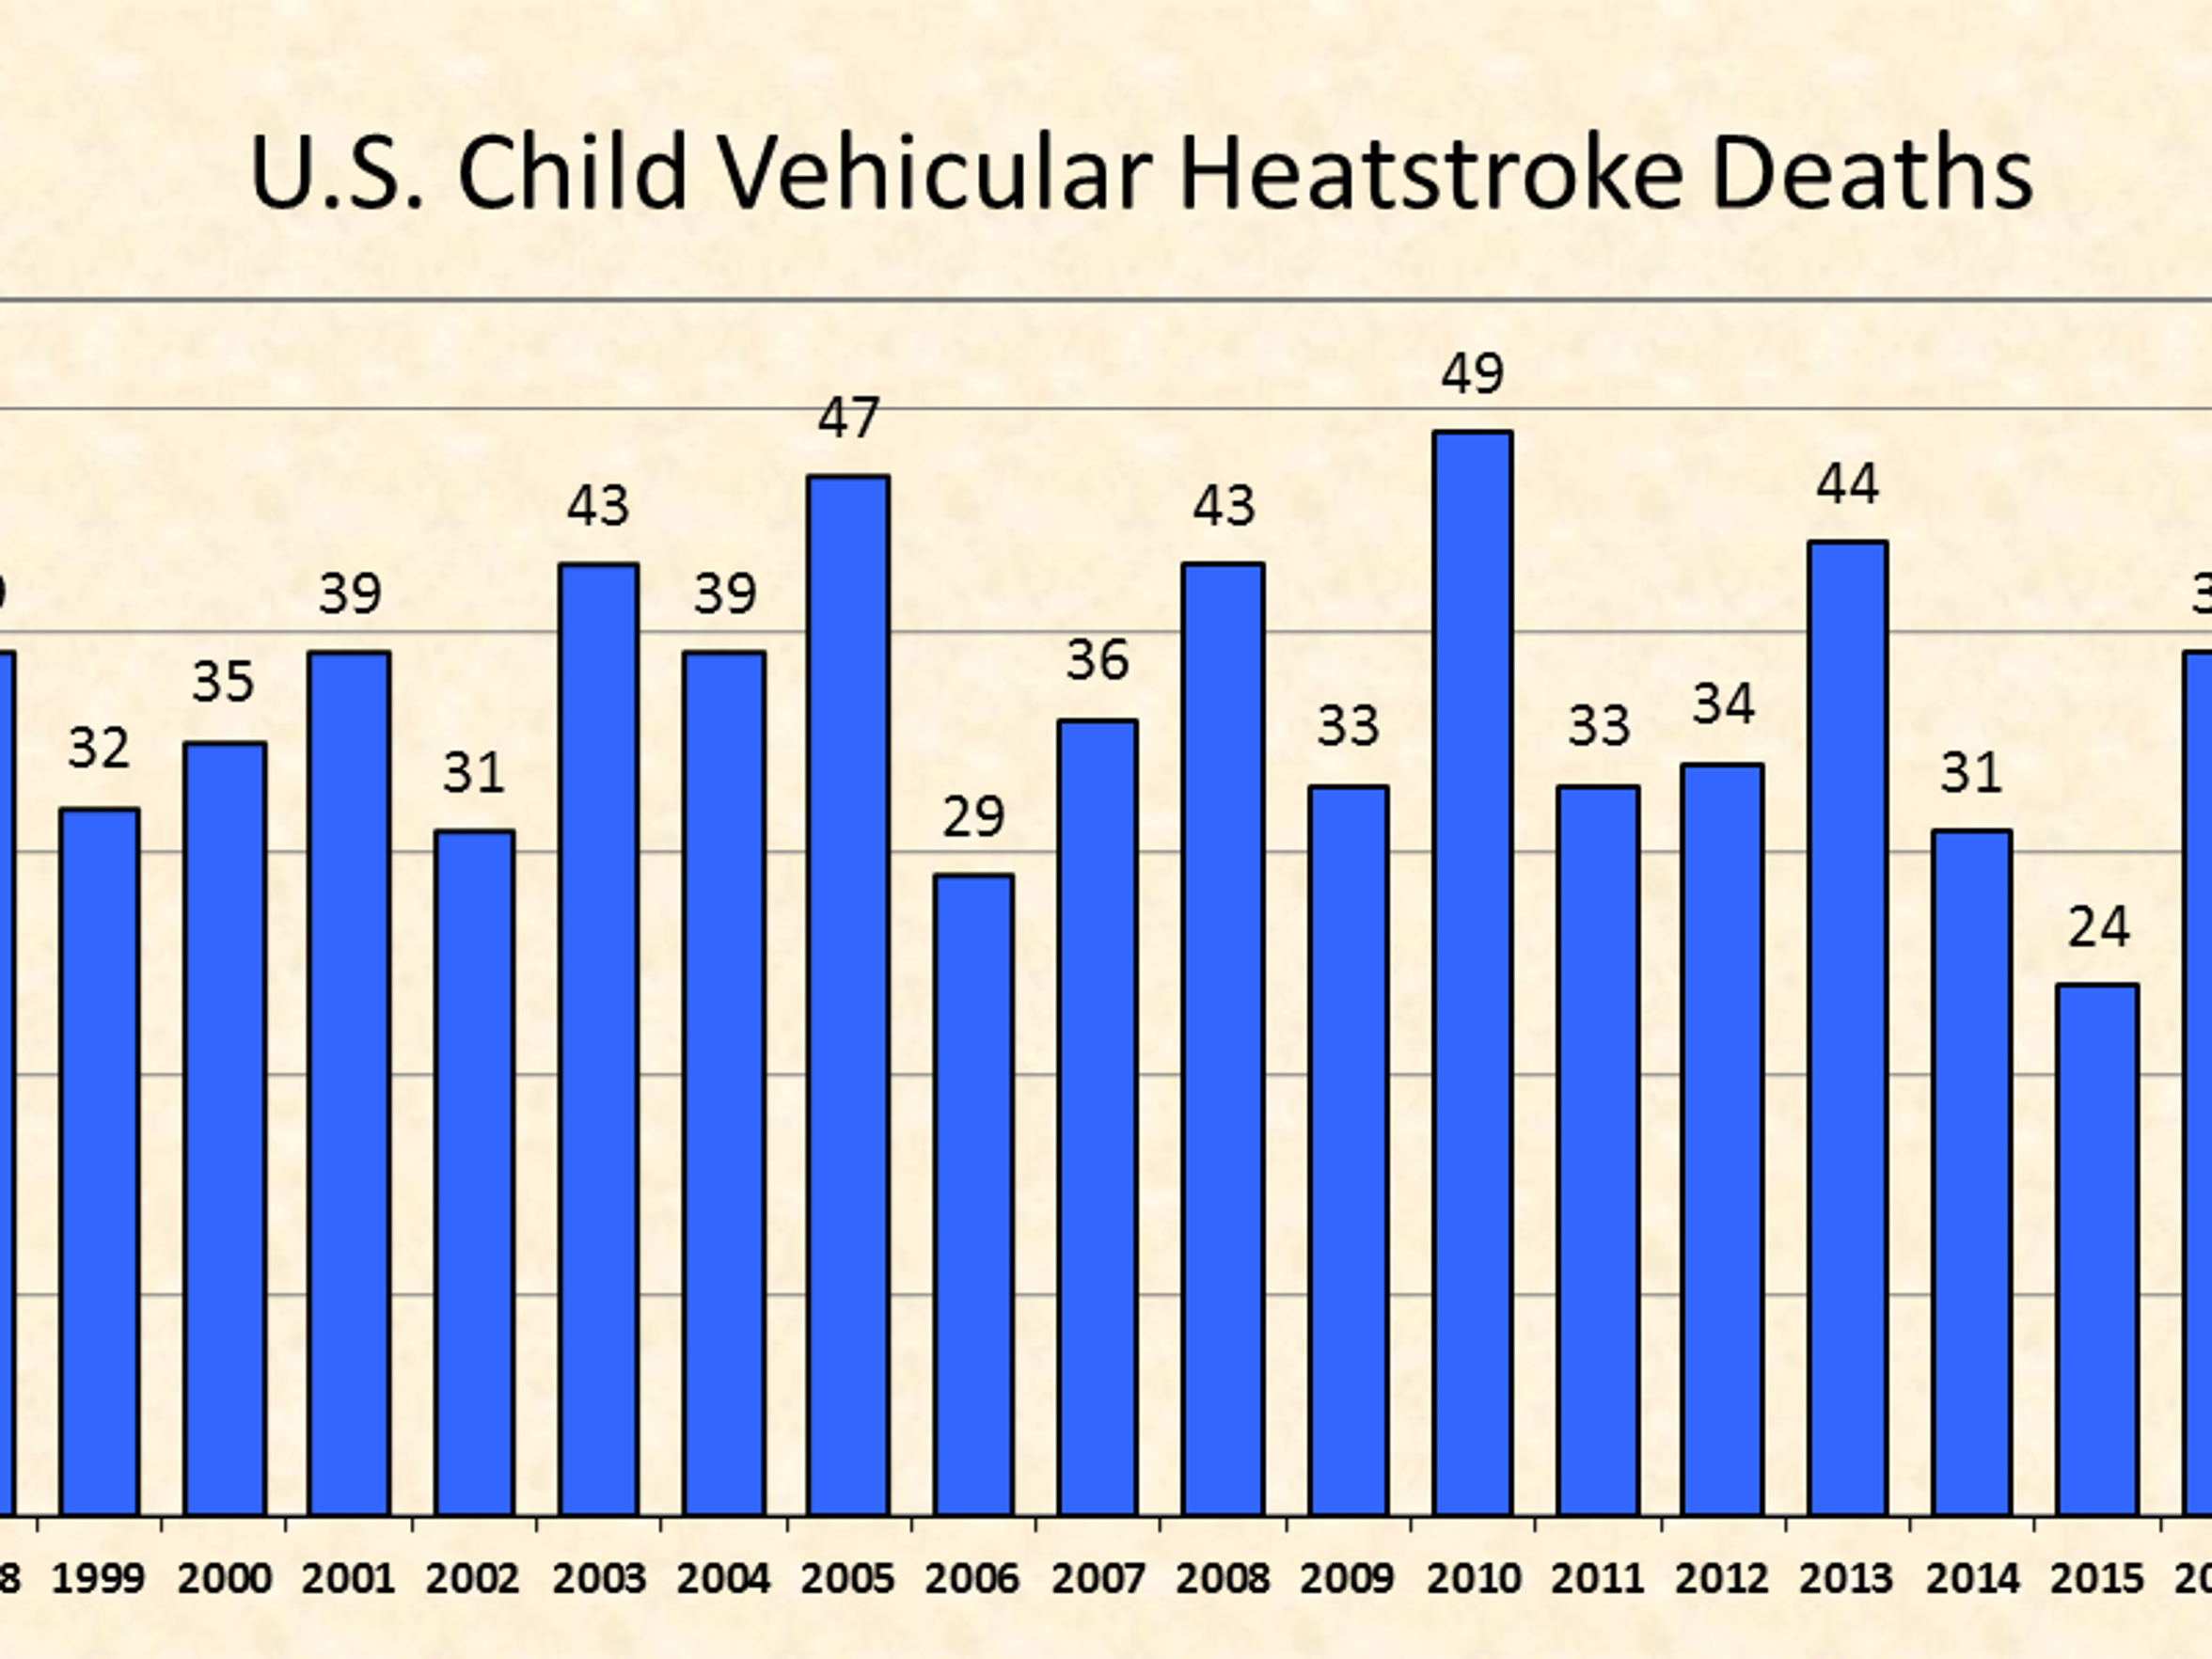 Hot car deaths by year.